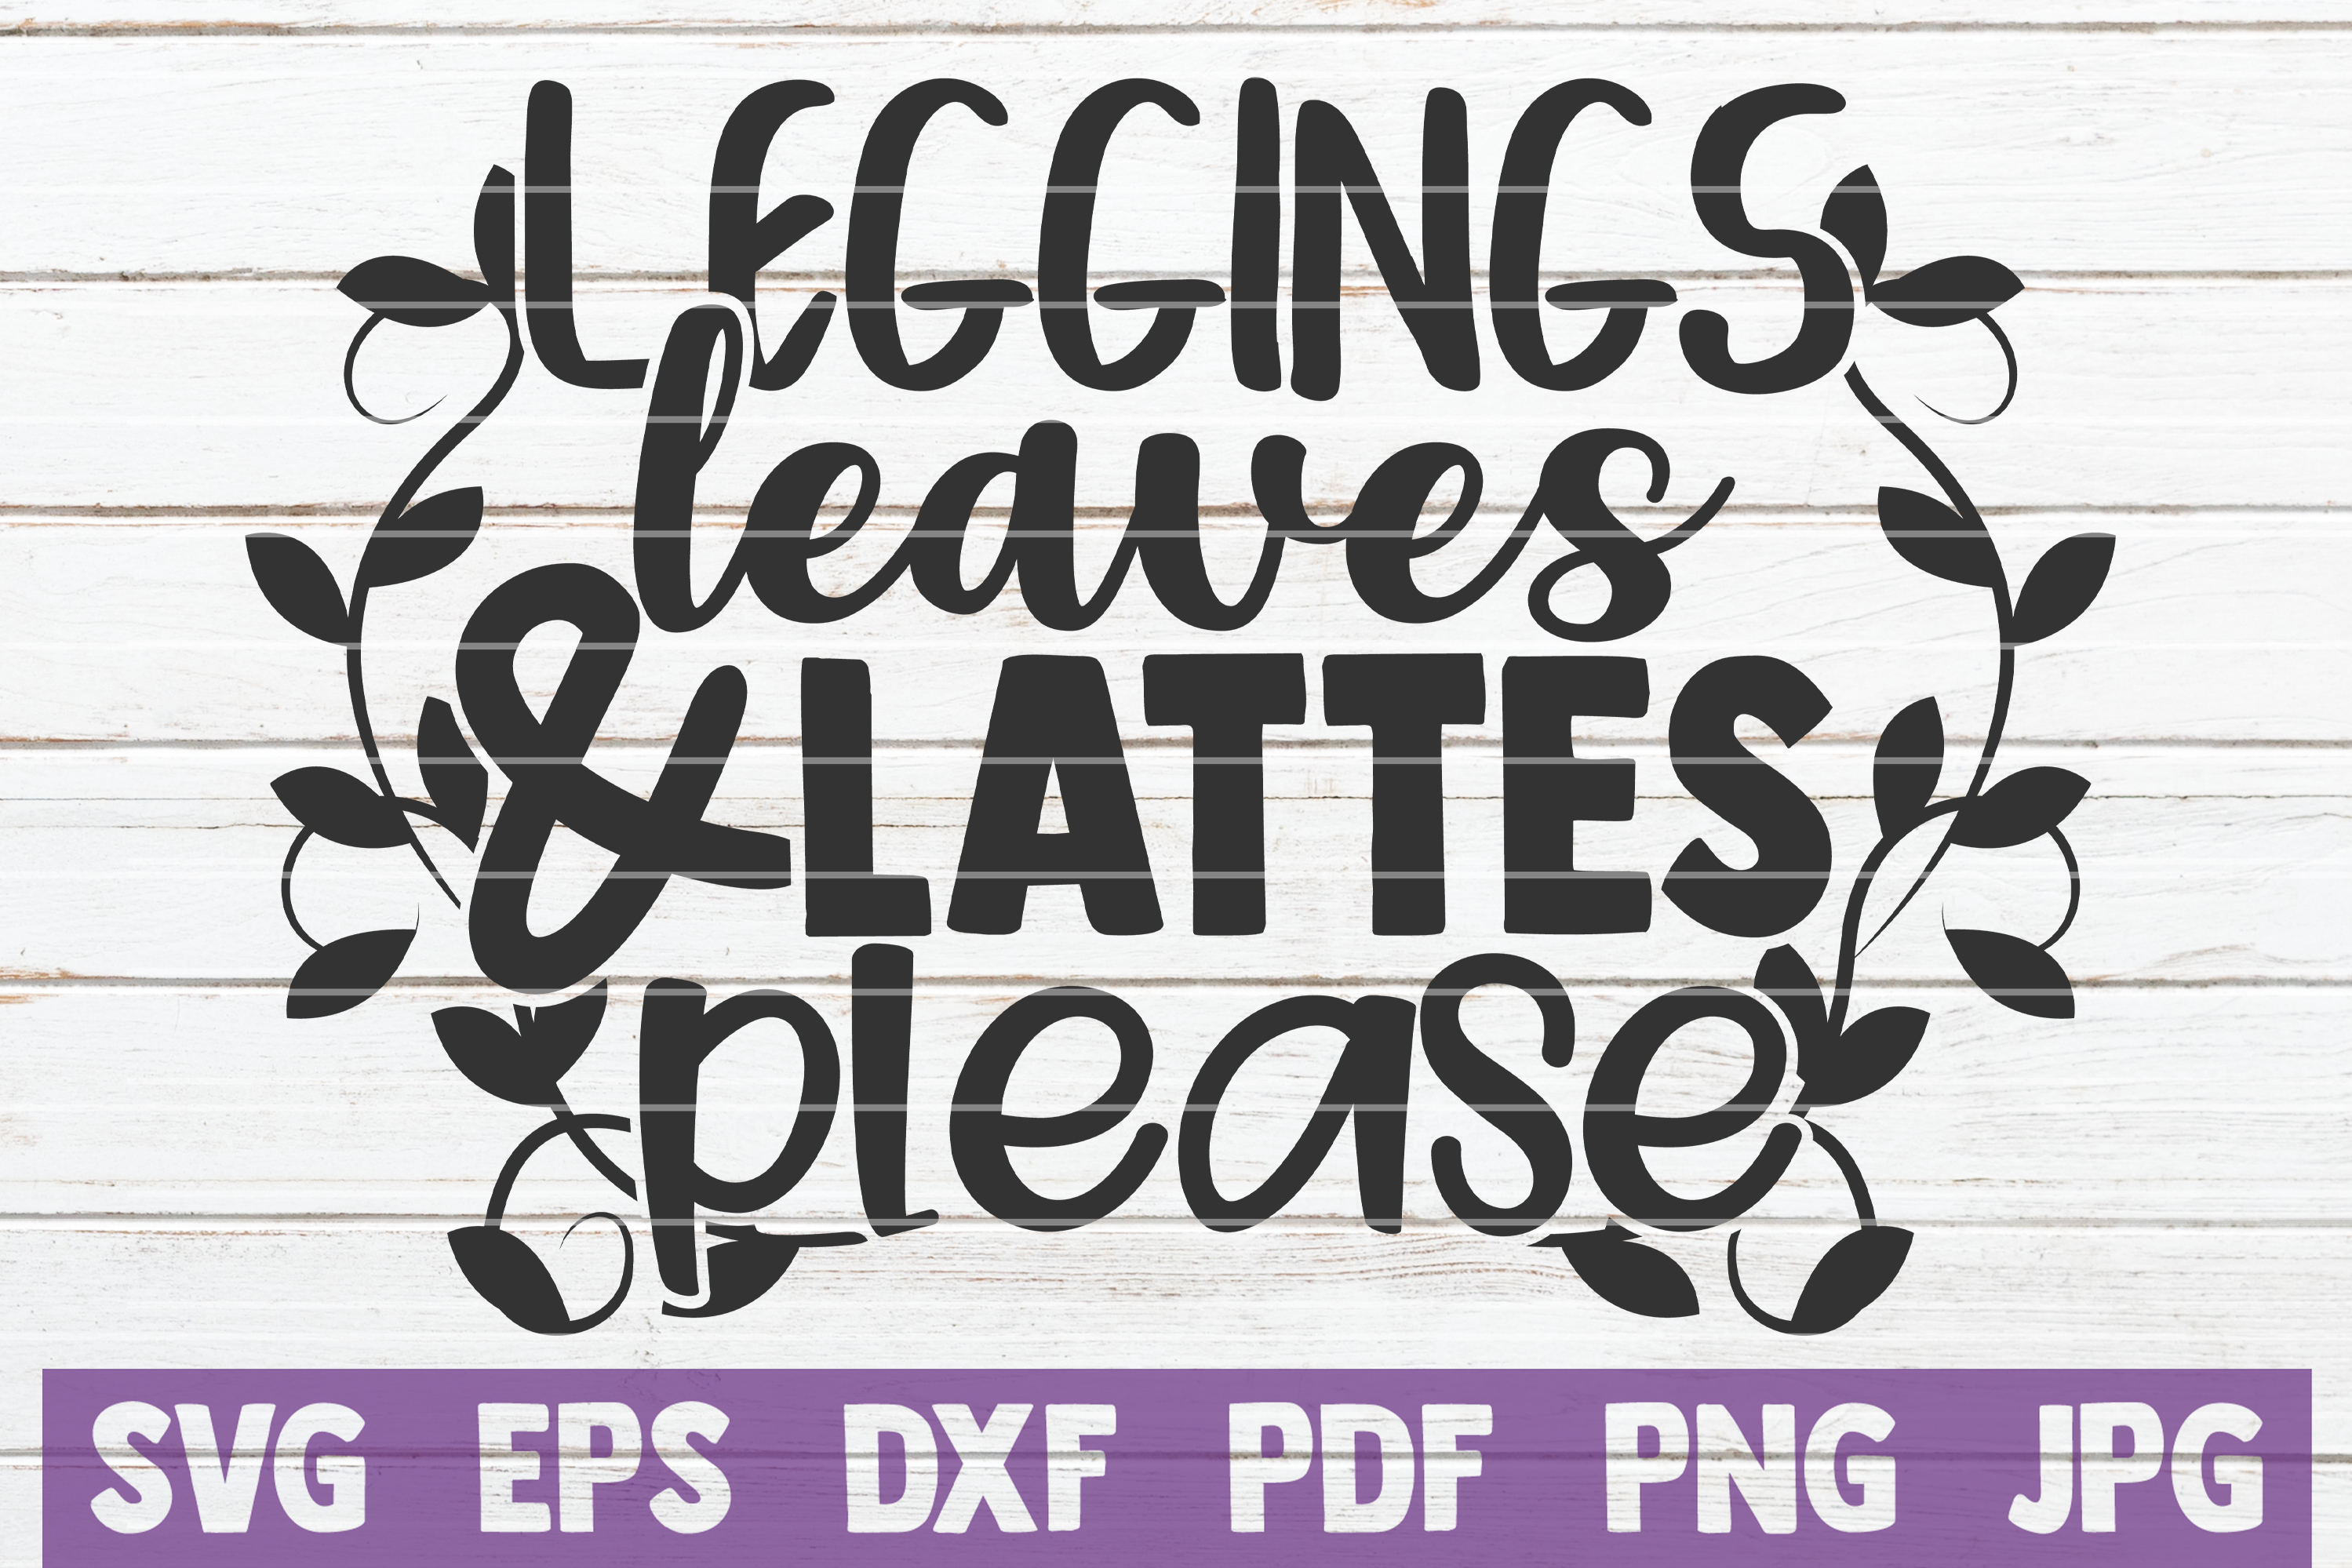 Leggings Leaves And Lattes Please SVG Cut File example image 1